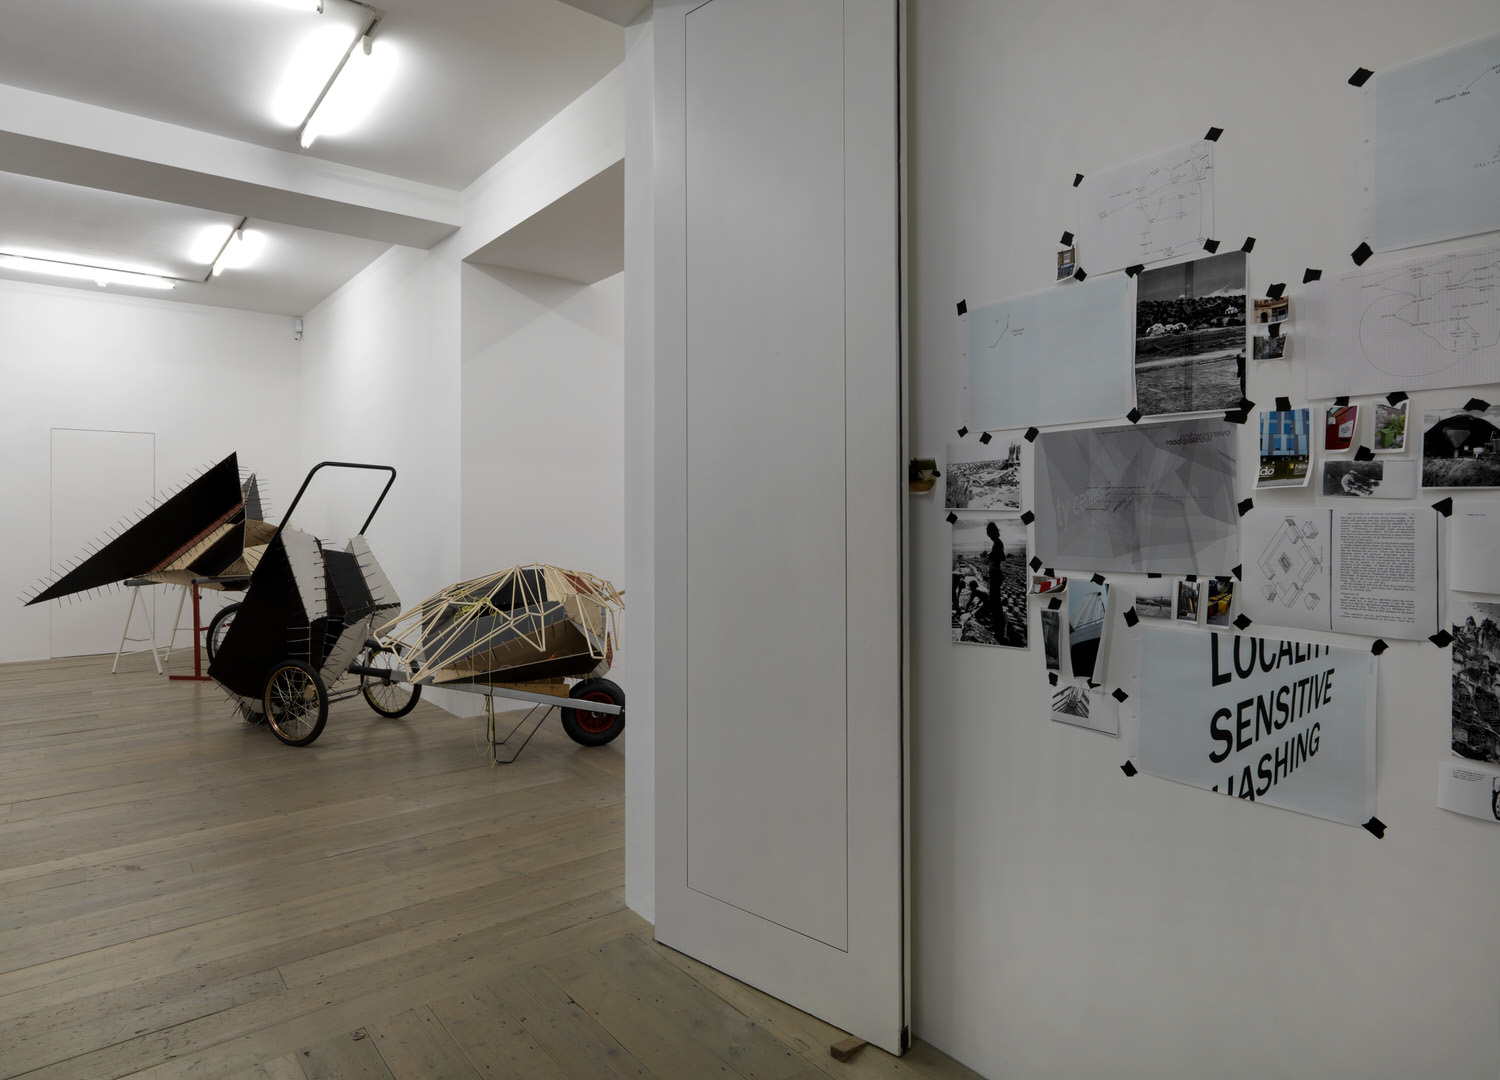 Installation view with research wall